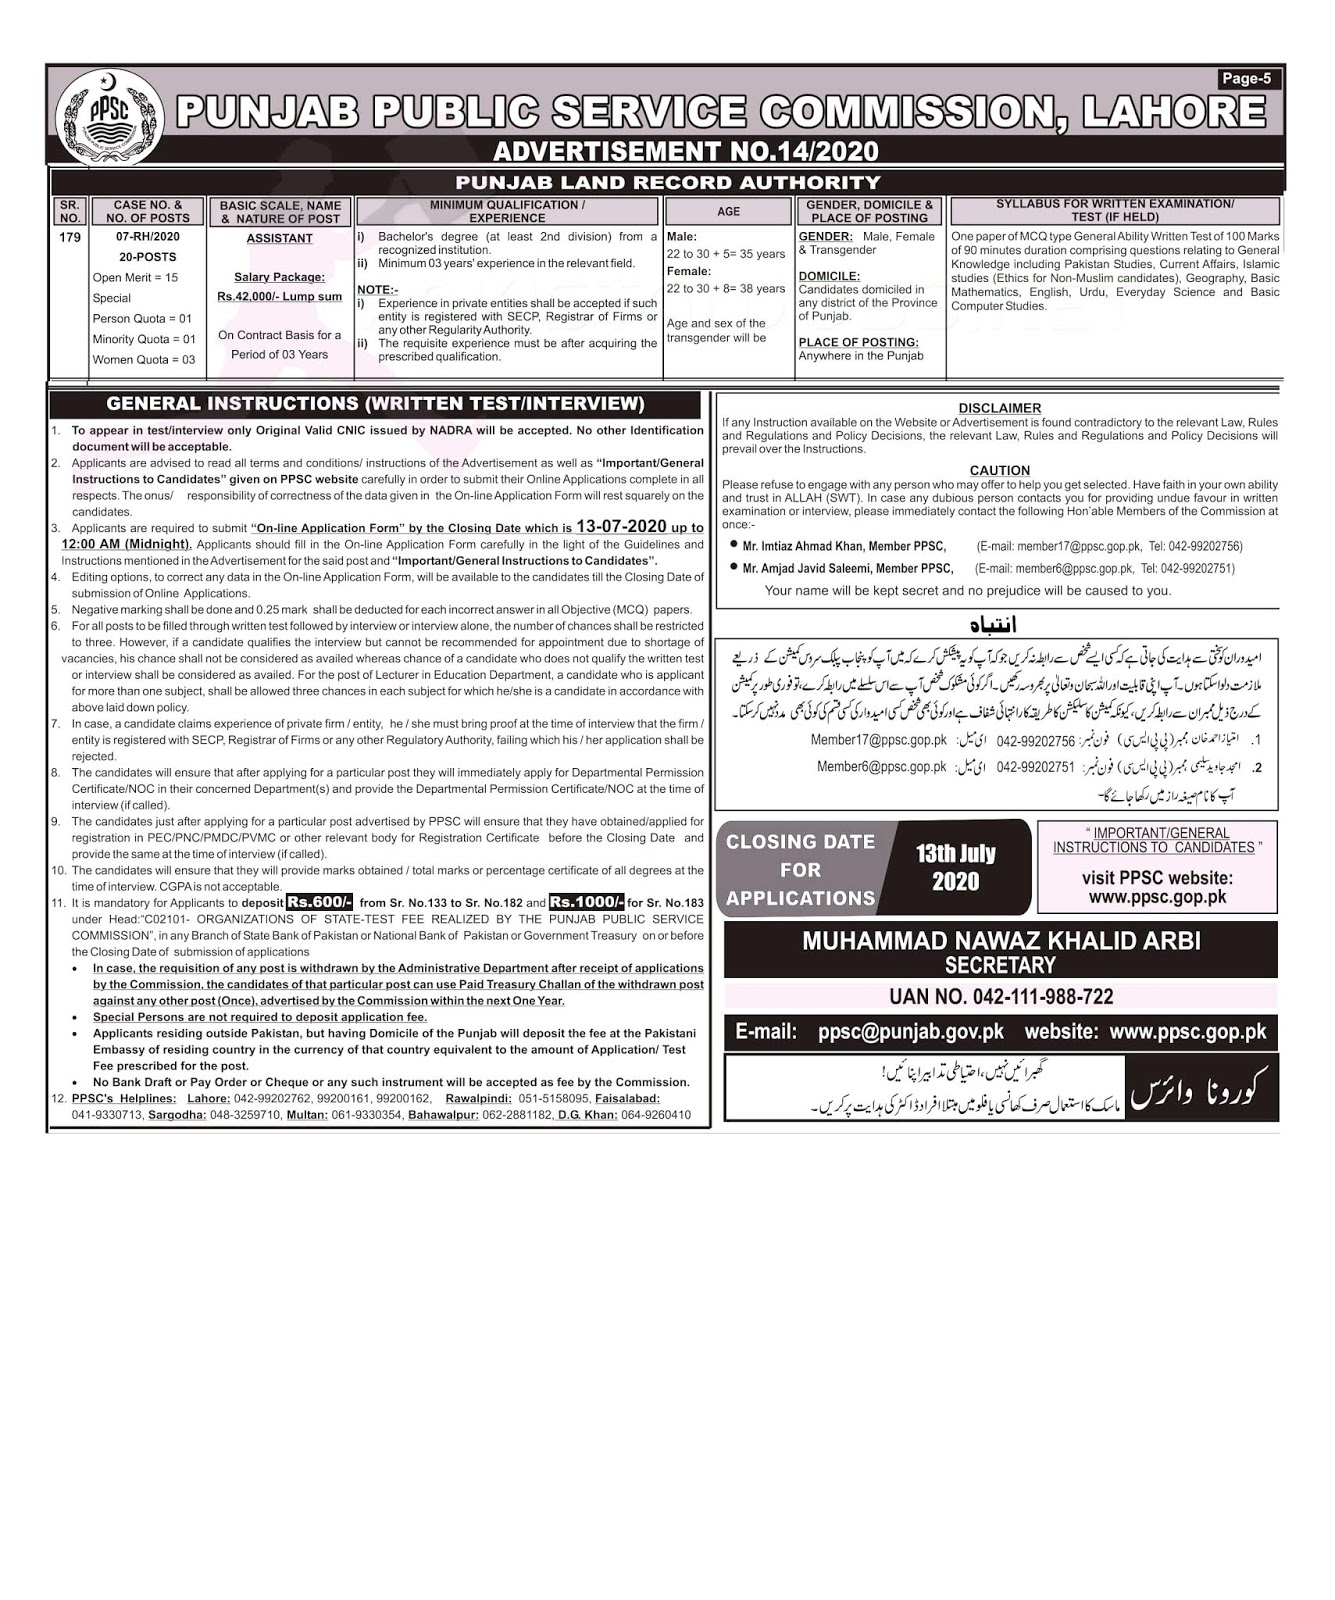 Jobs Available in Punjab Land Records Authority PLRA Assistant Latest Jobs 2020 PPSC